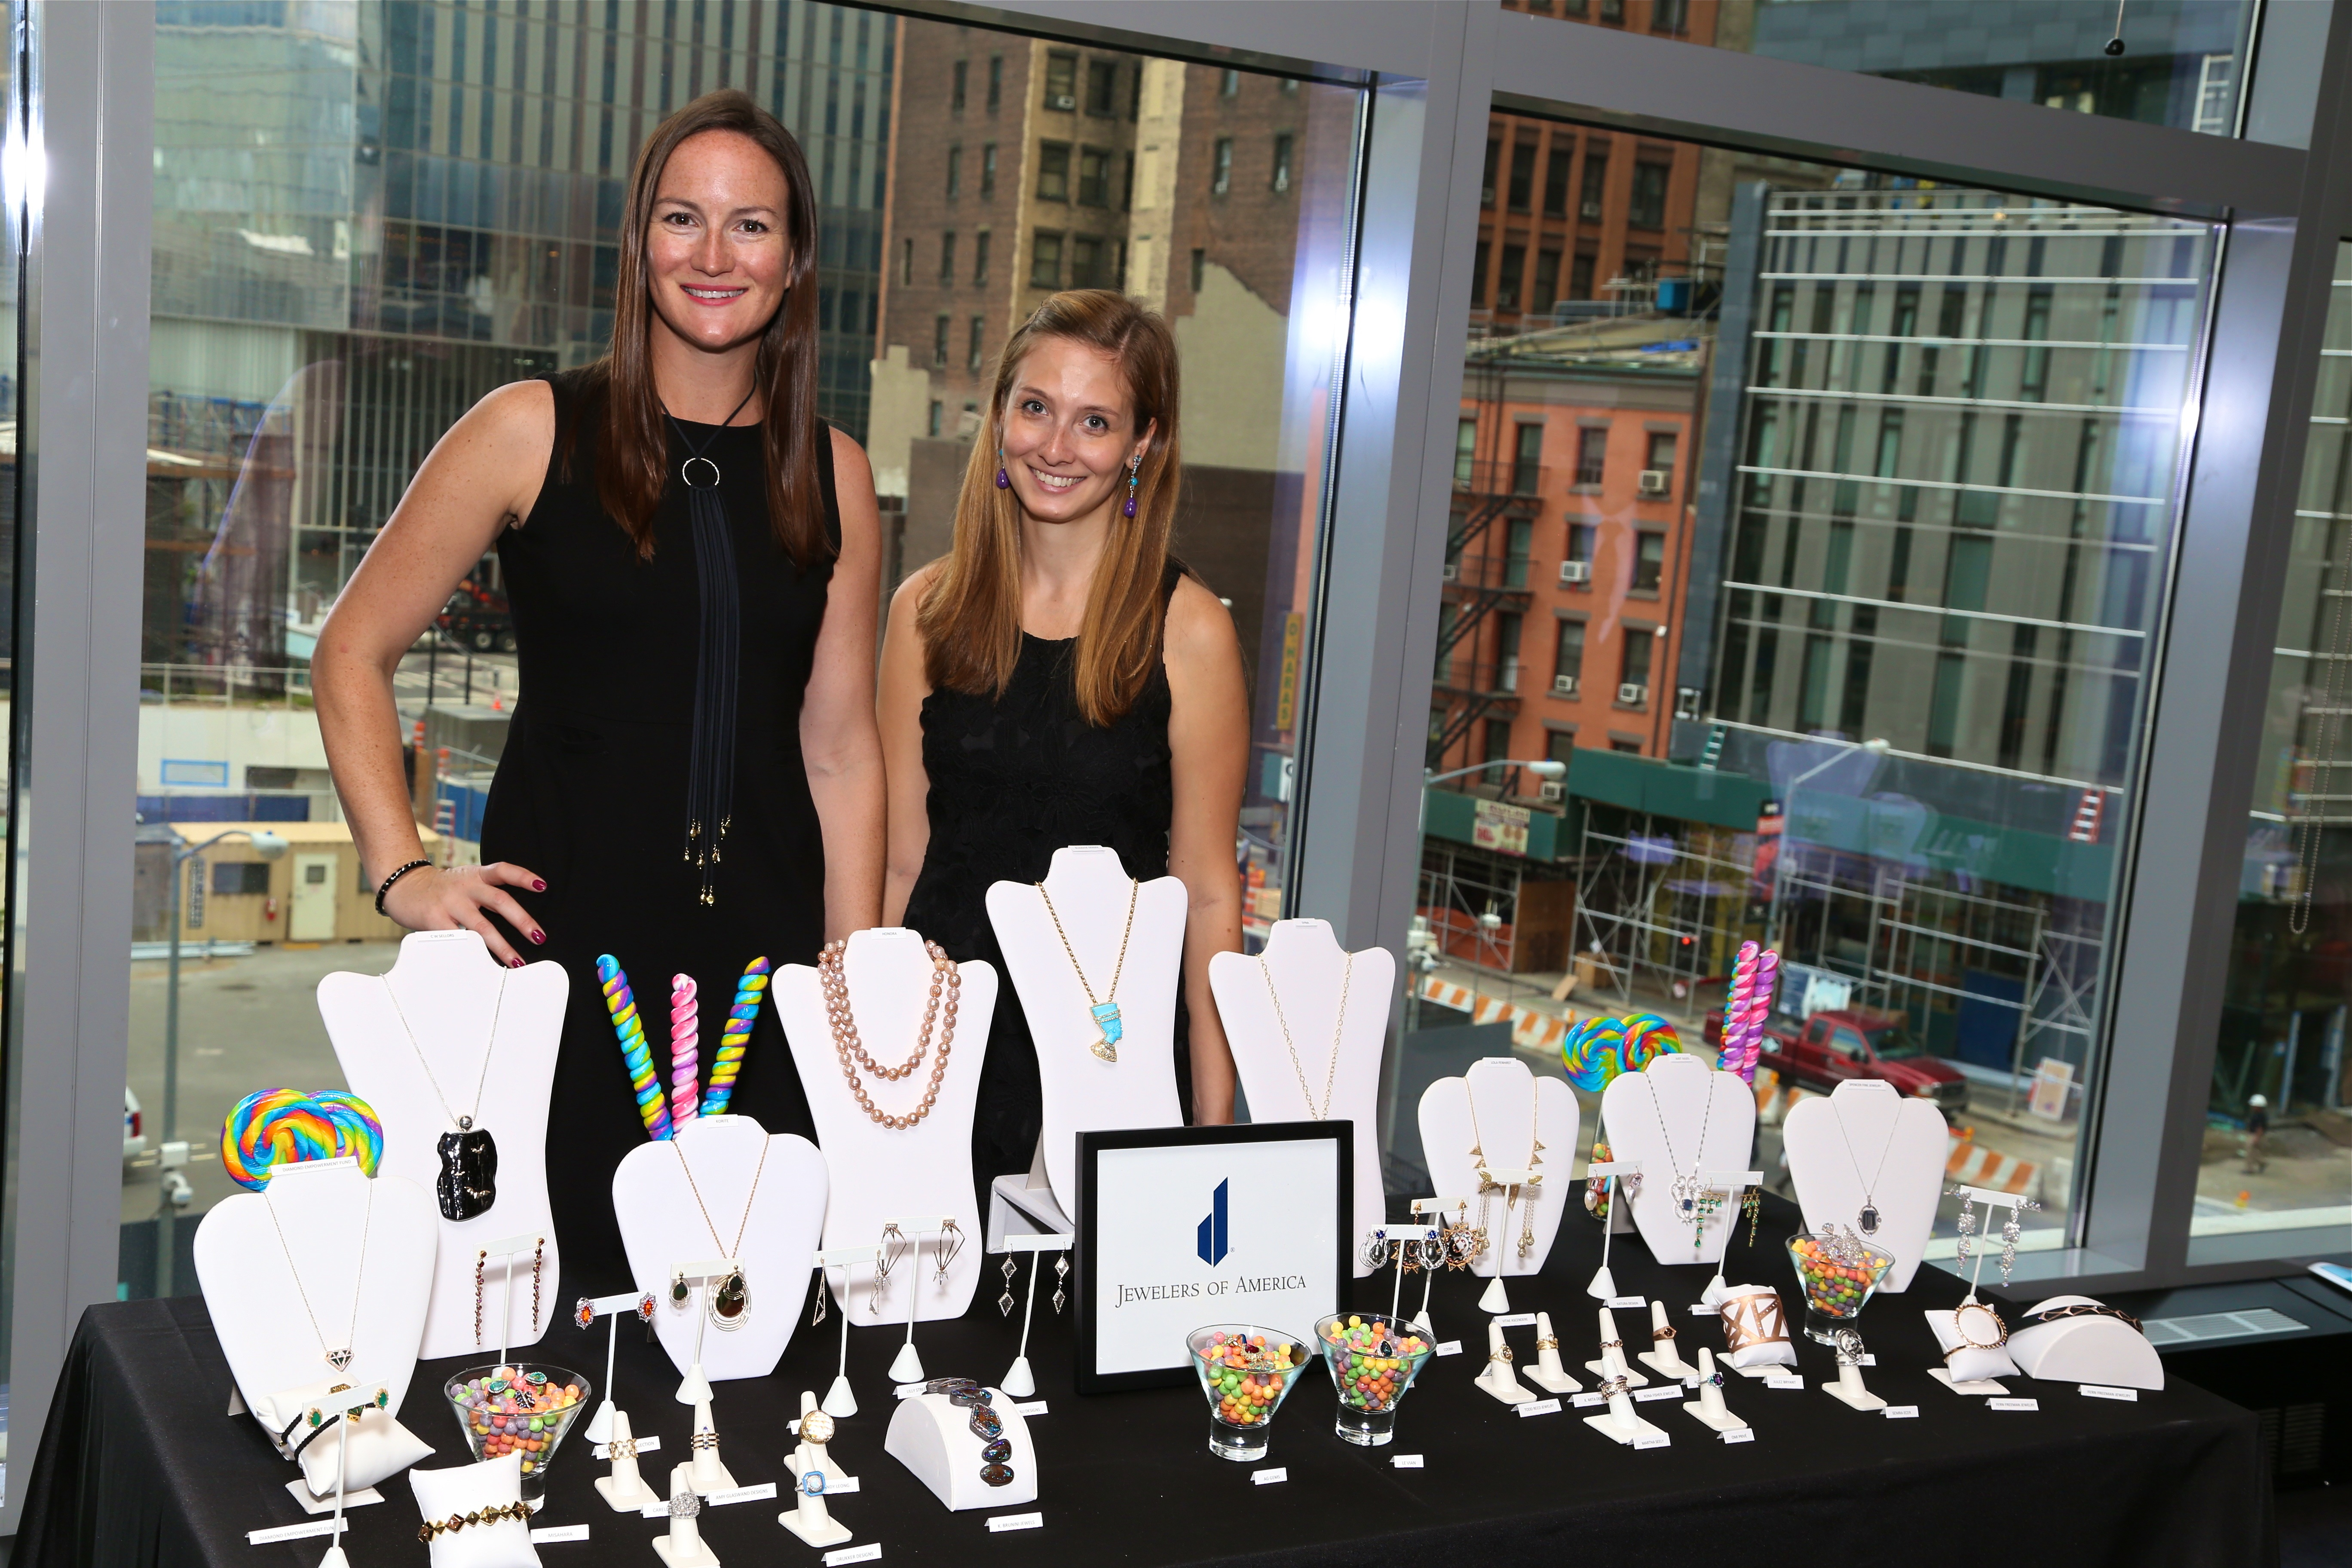 Amanda Gizzi and Lauren Kalma of Jewelers of America with 2016 Editor Preview Collection